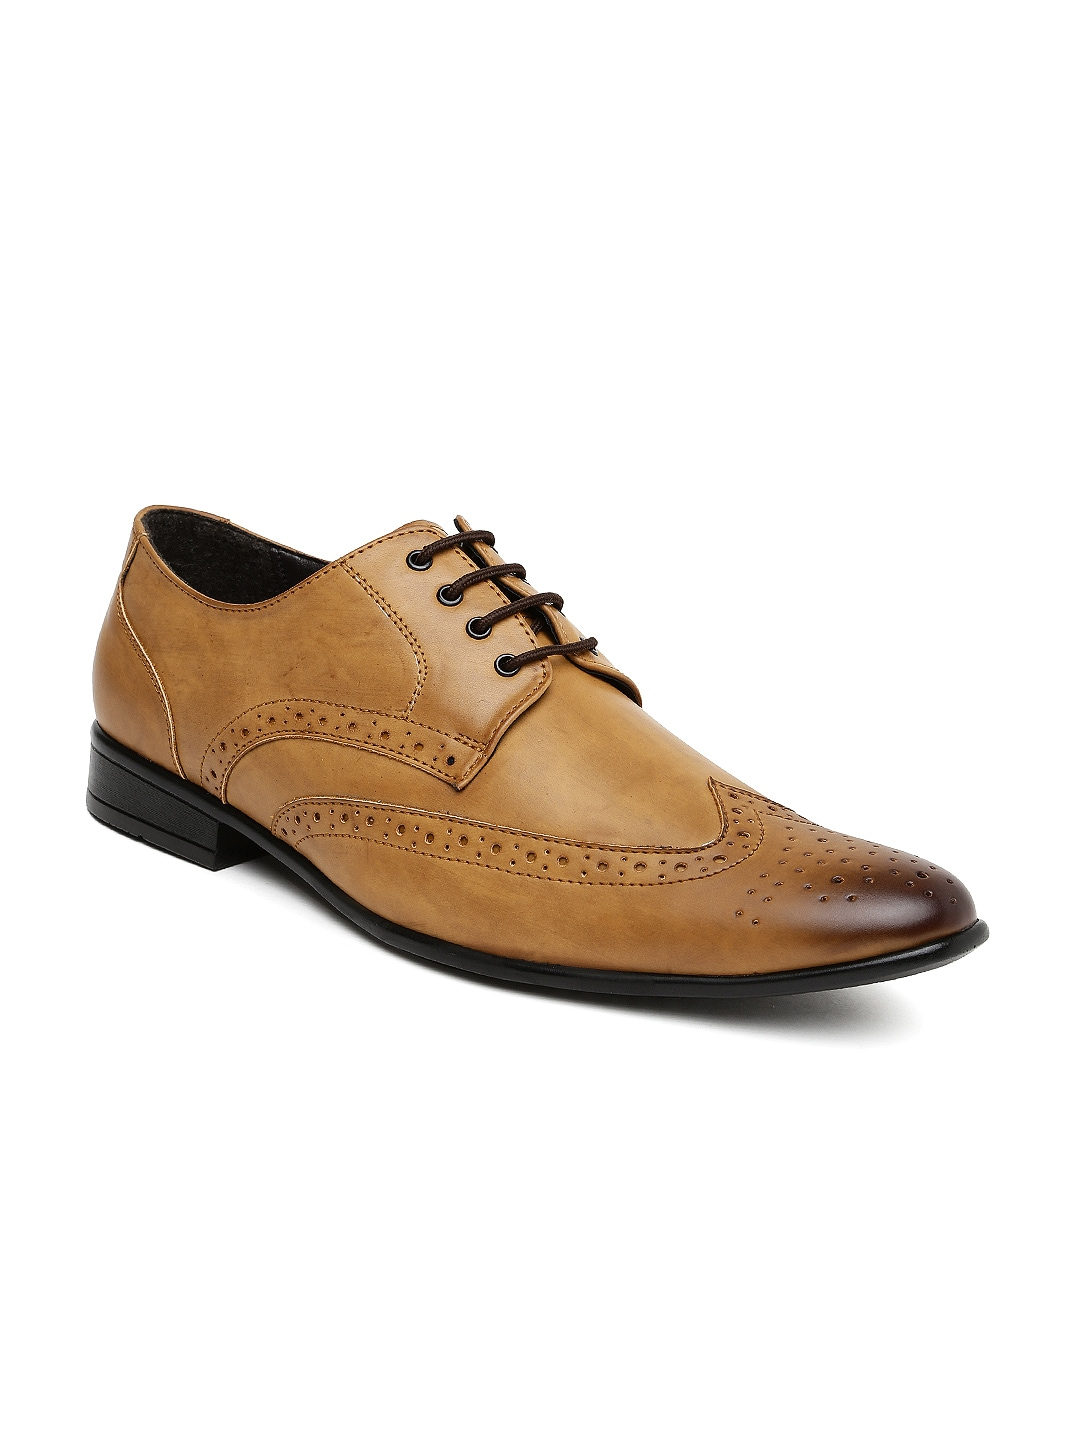 a428211a4bd Brogue Shoes - Buy Brogue Shoes online in India